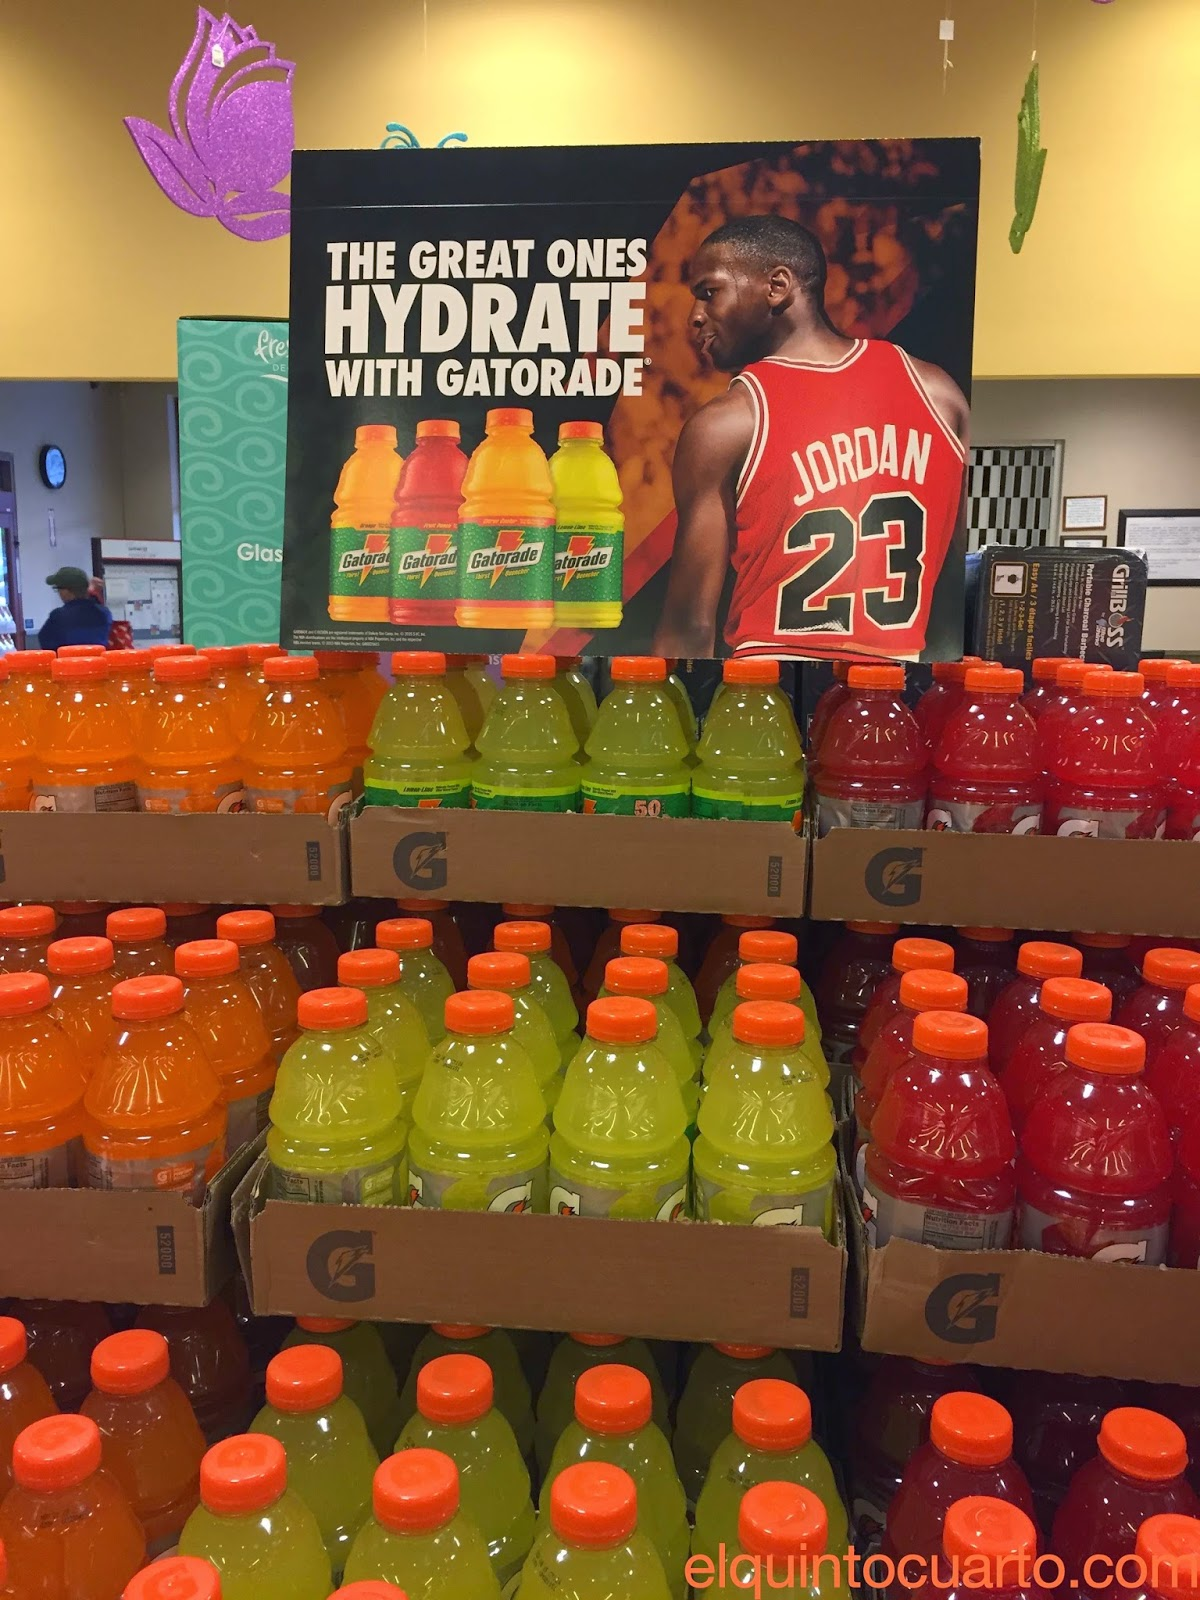 Michael Jordan and Gatorade